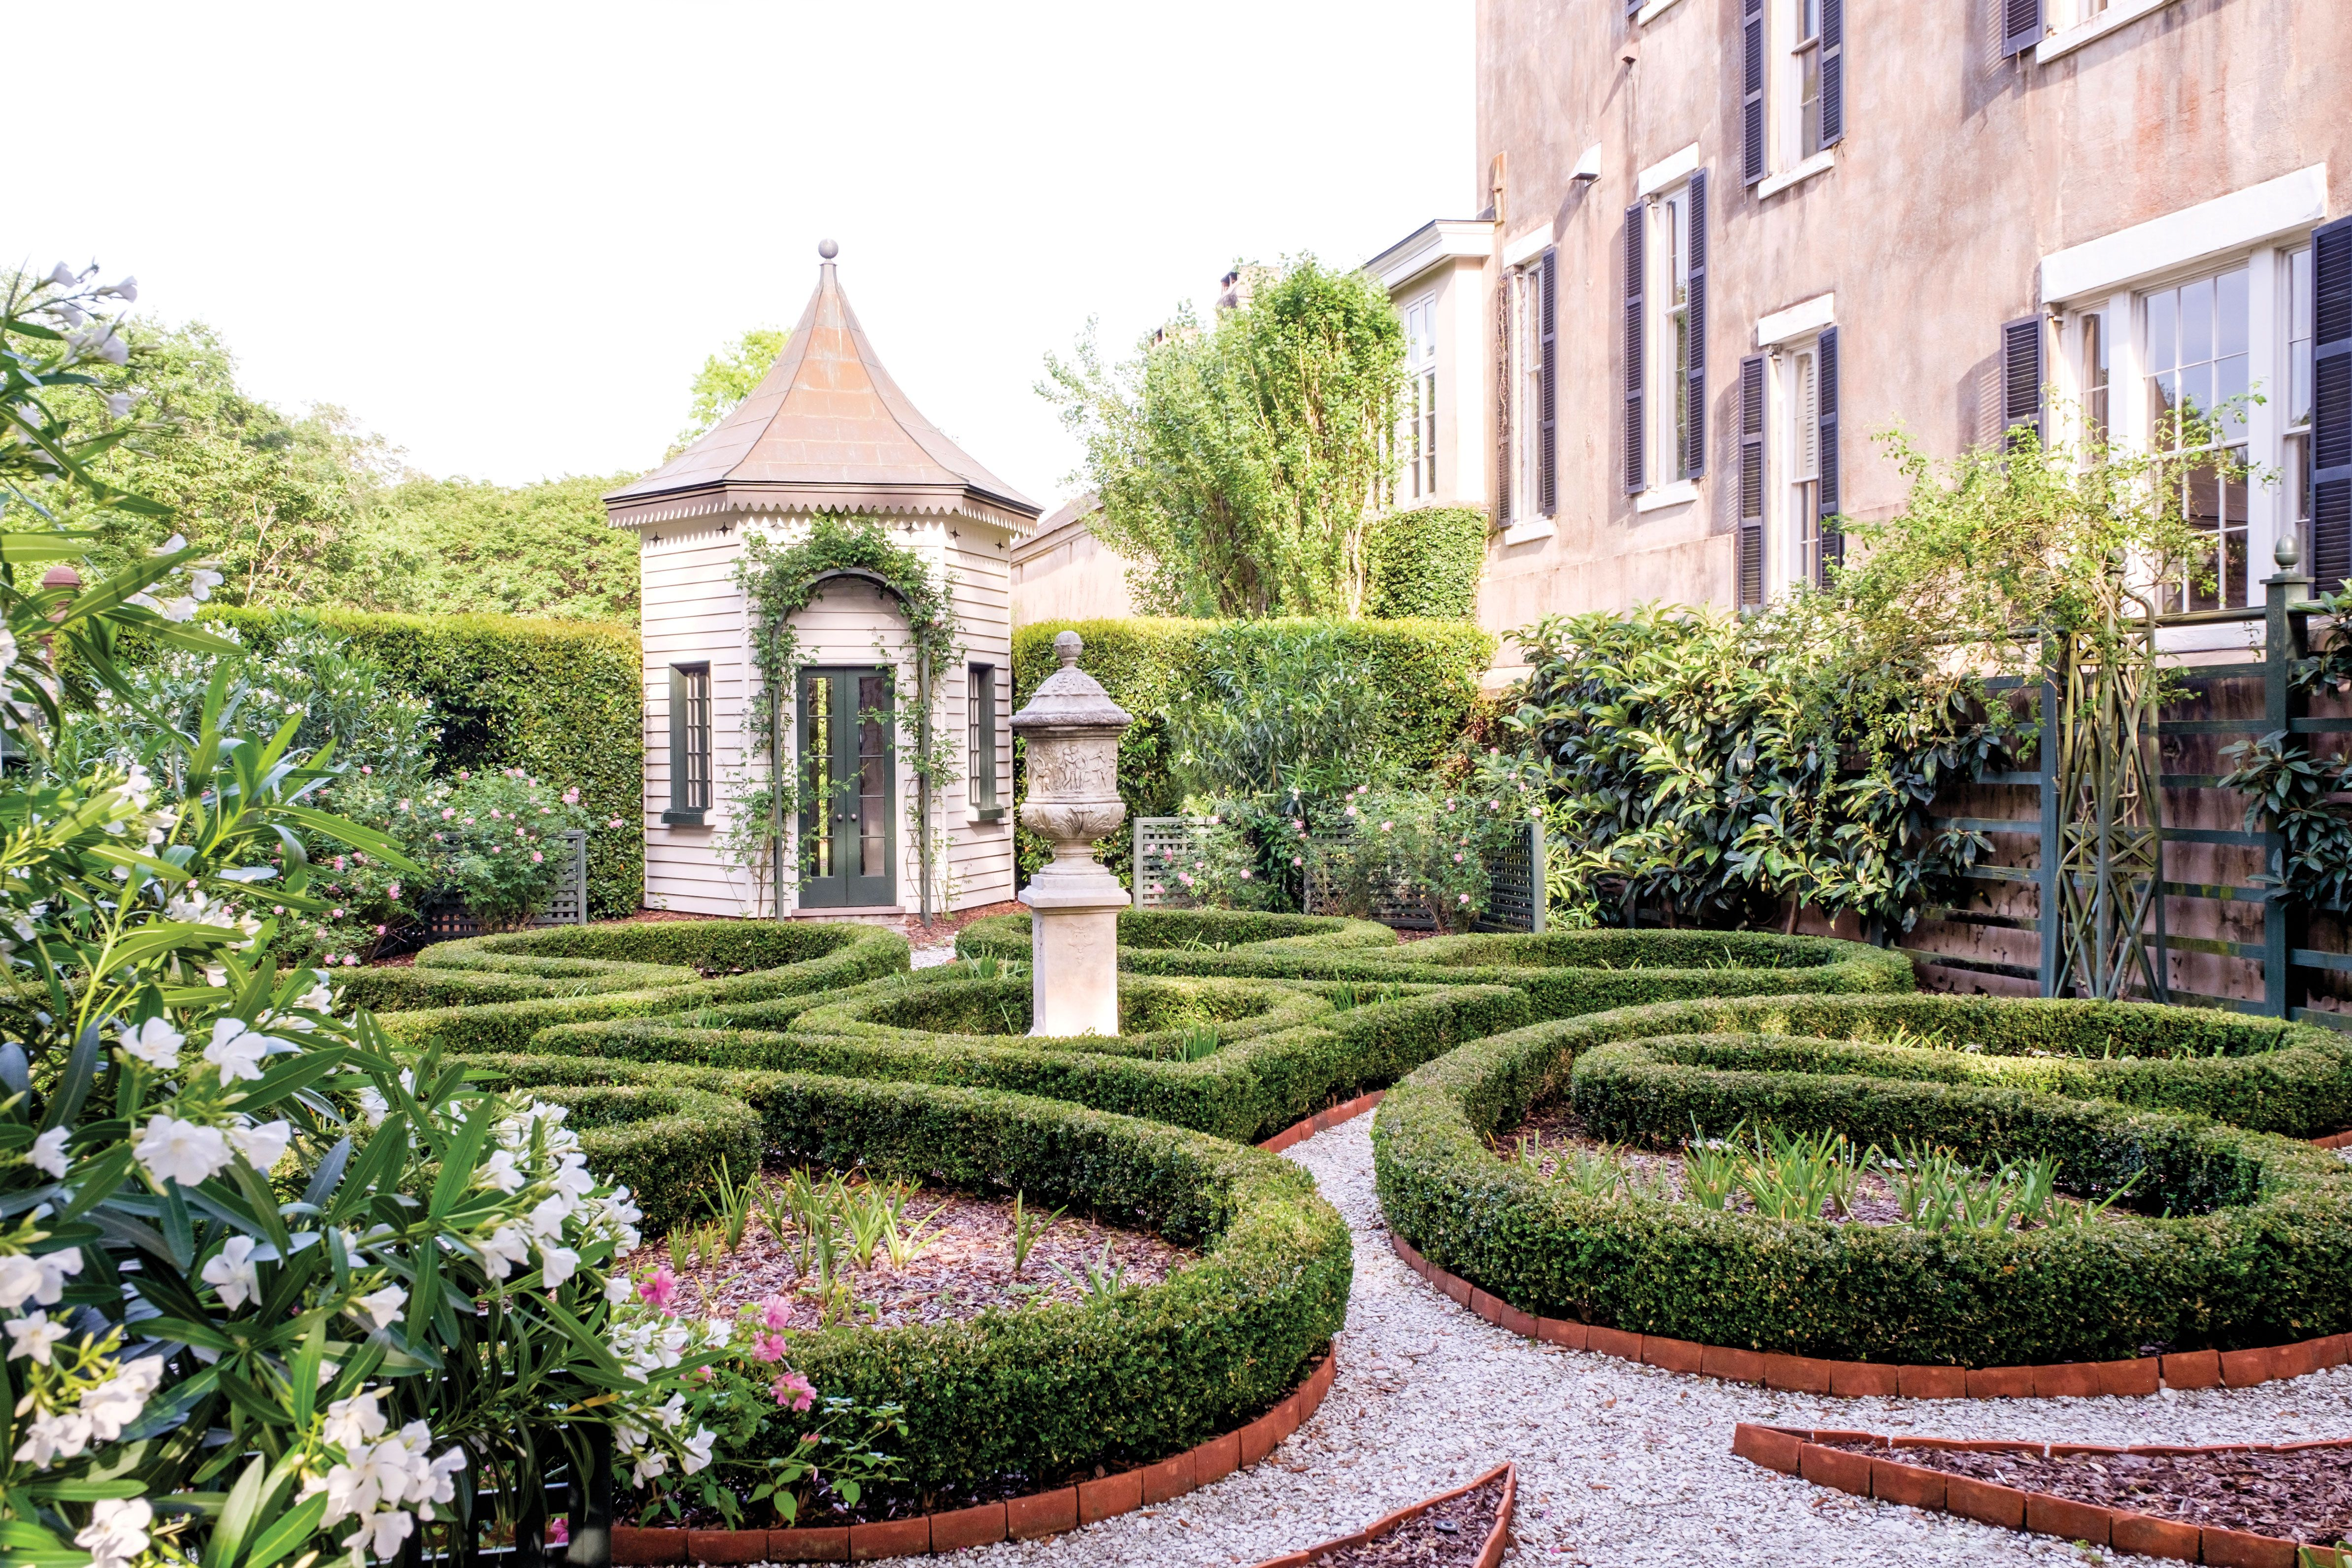 10 Best Charleston Hotels in 2018 - Where to Stay in Charleston, SC